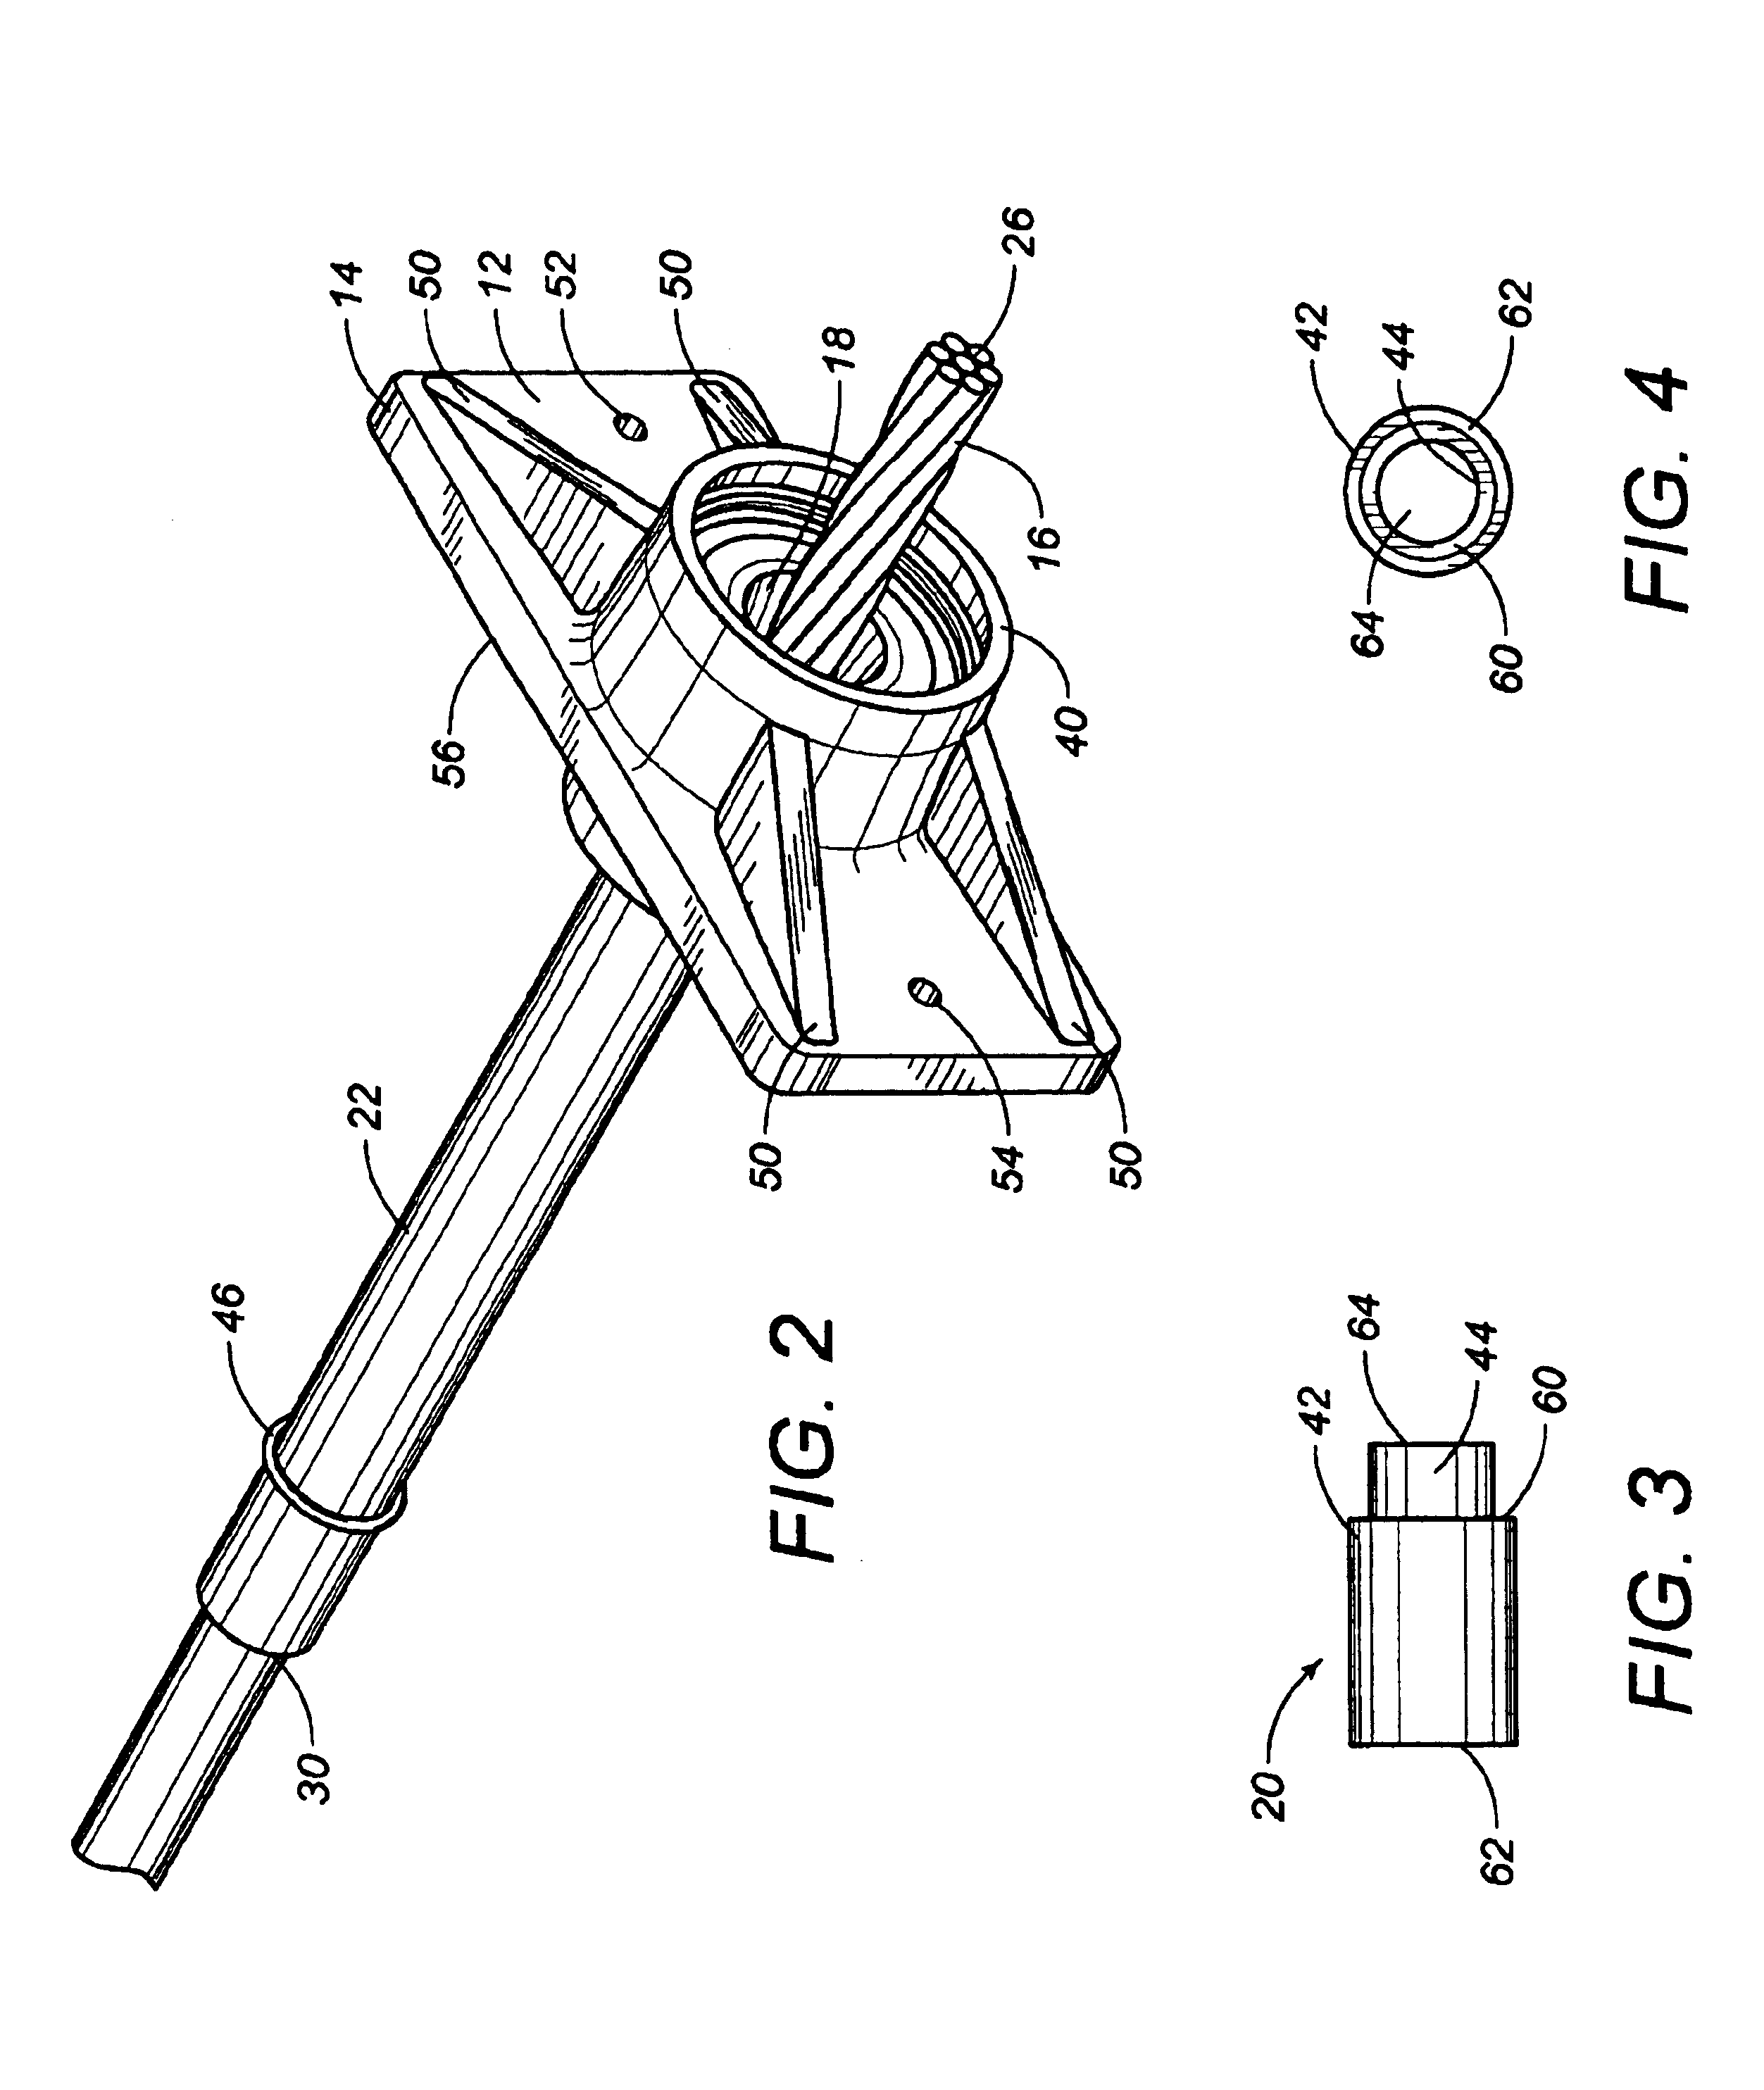 Patent us corrosion protection seal for an anchor